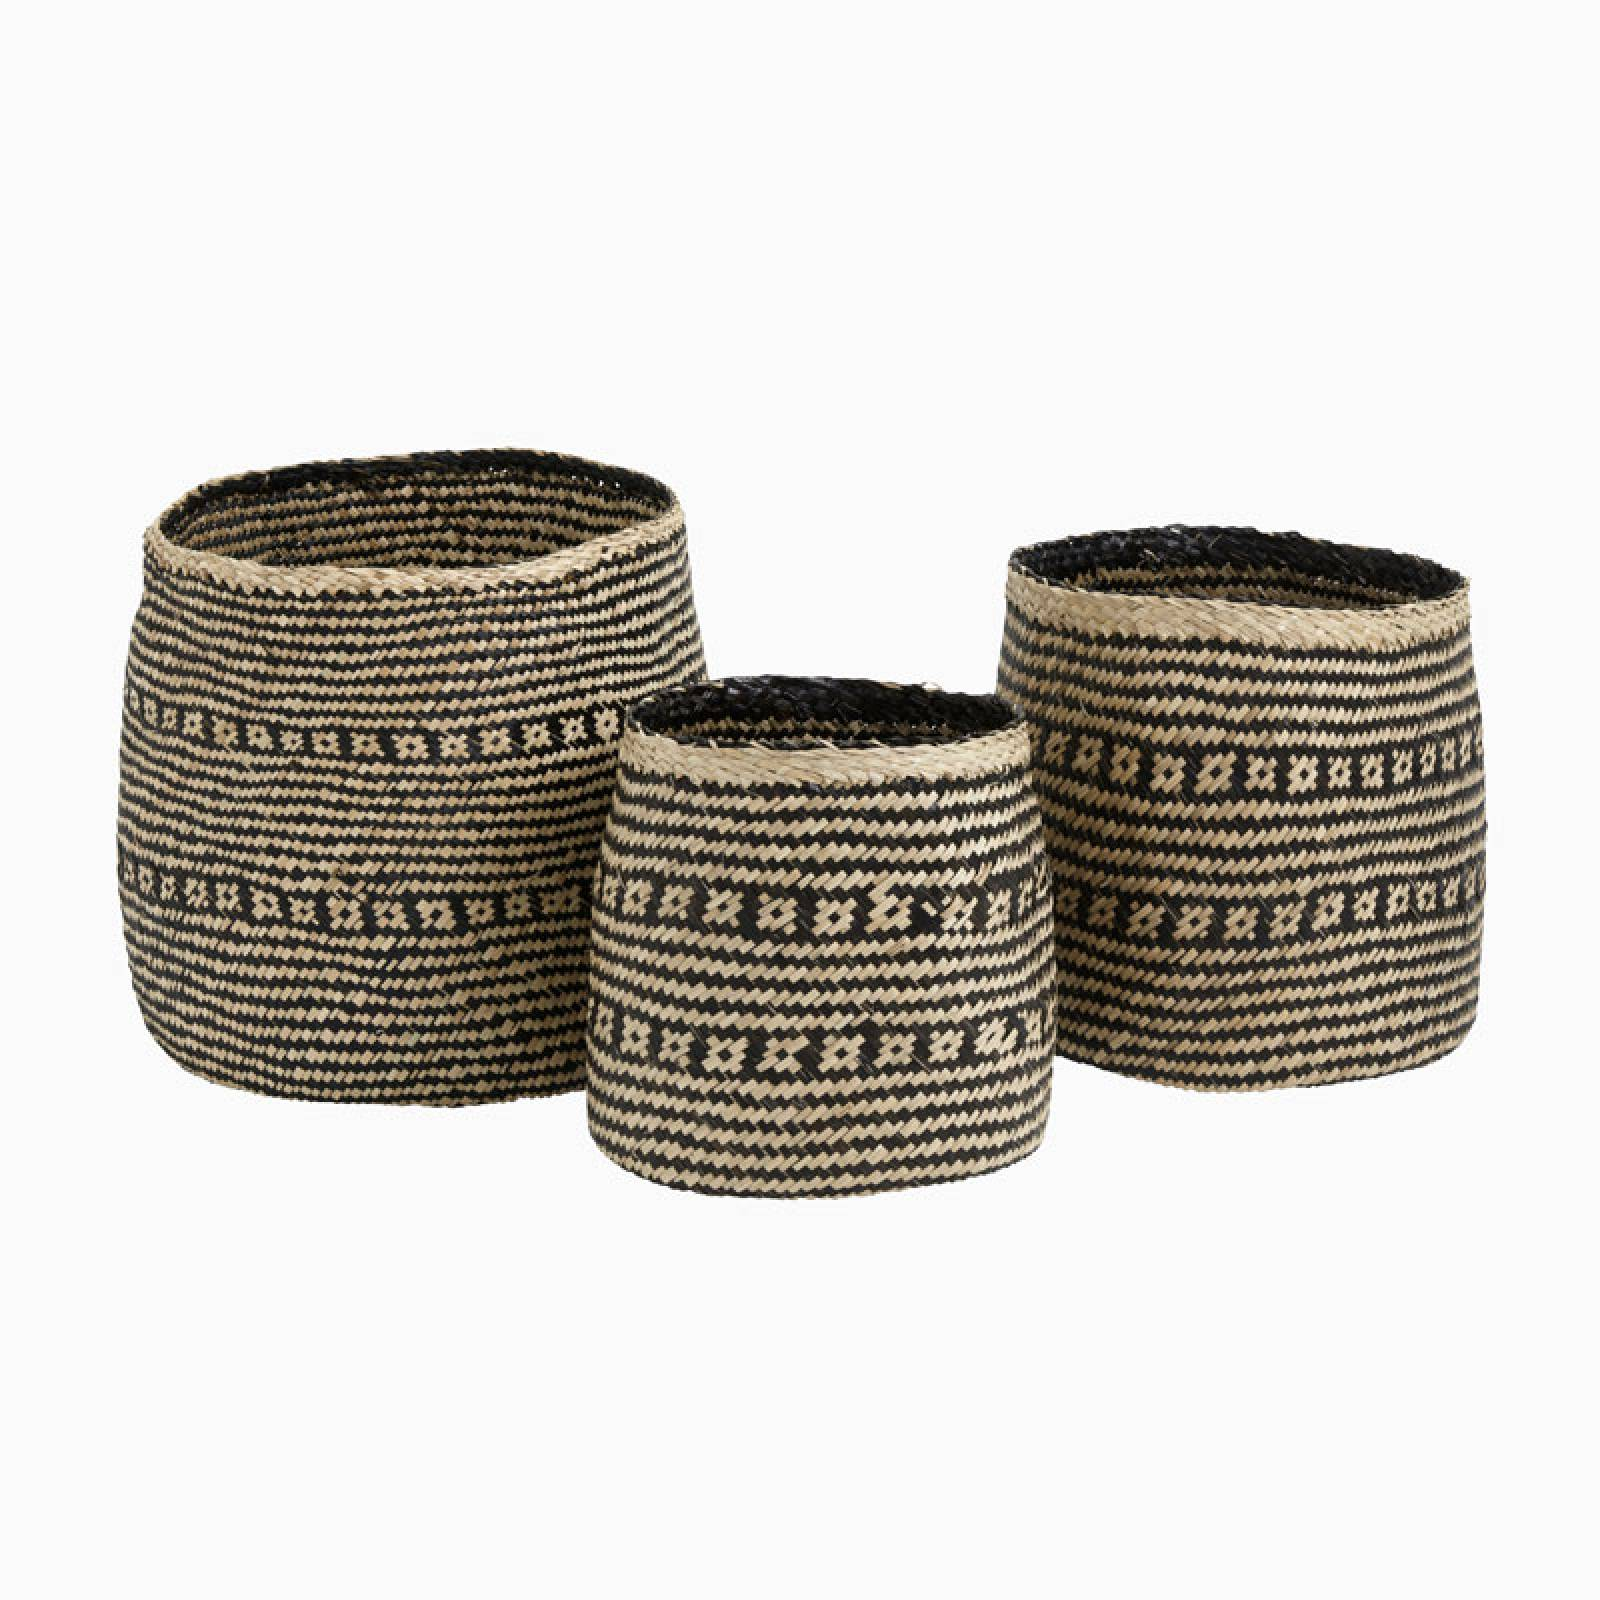 Cozy Natural And Black Seagrass Basket - Large 40cm